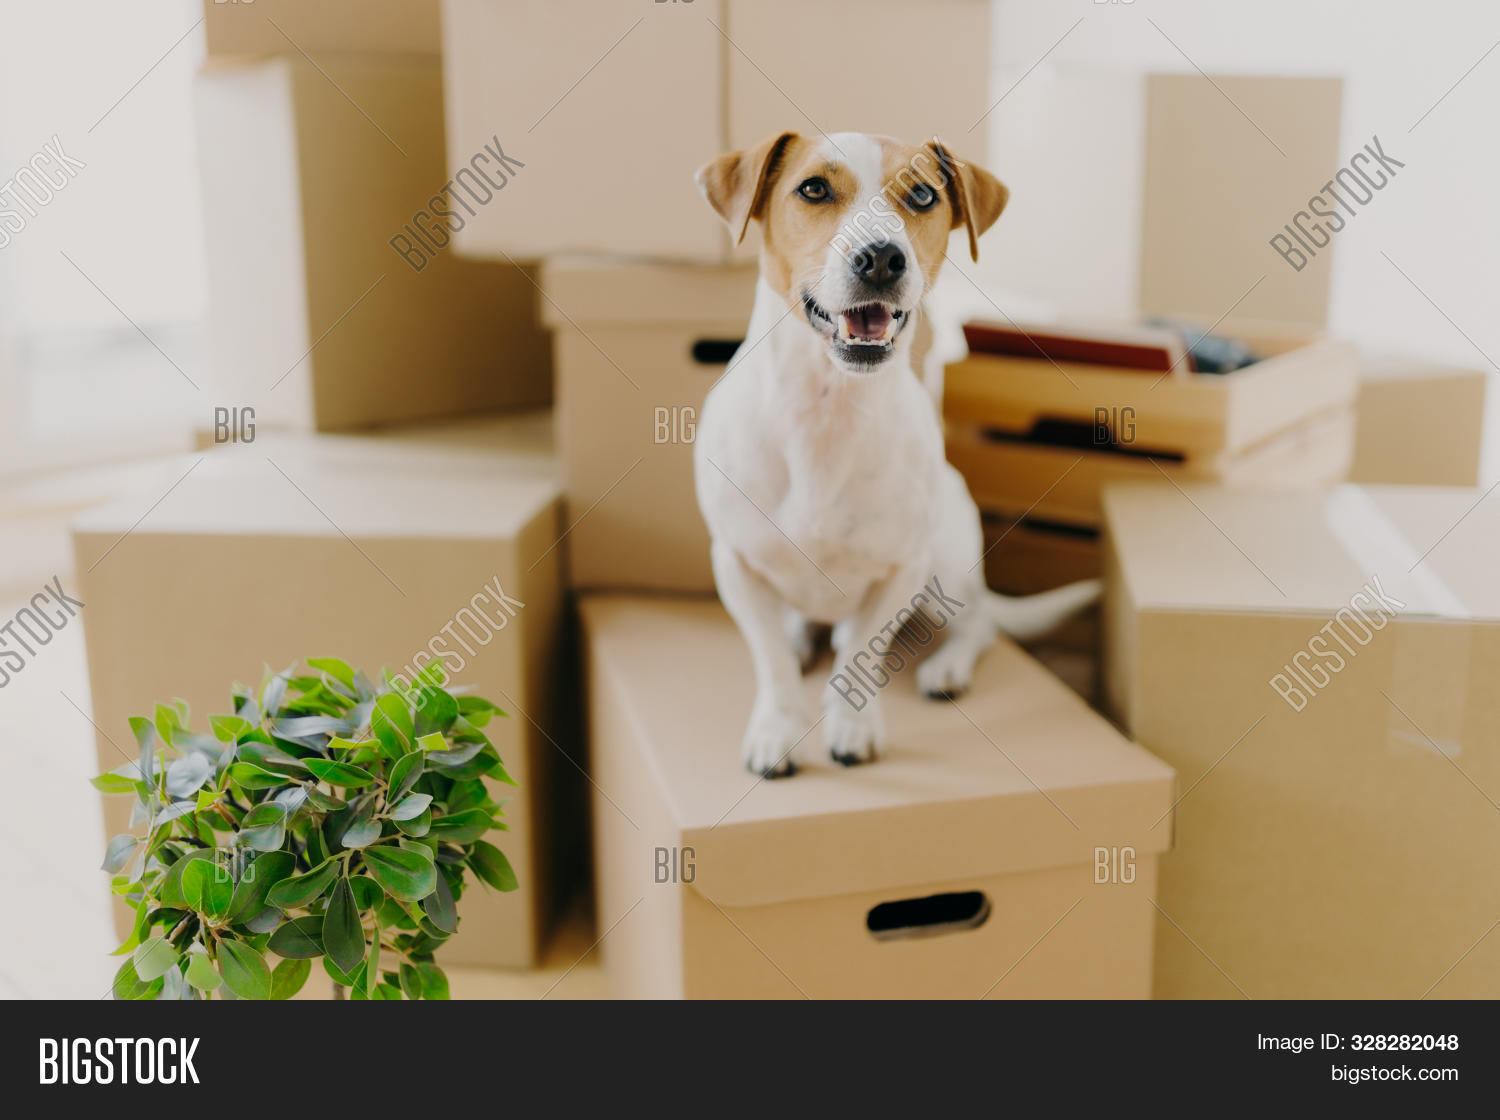 abode,alone,animal,apartment,belongings,box,breed,brown,cardboard,carton,dog,domestic,dwelling,empty,estate,flat,flower,home,horizontal,image,indoor,isolated,lamp,livingroom,lonely,looking,moving,new,one,package,packing,parcels,pedigree,pet,pile,plant,posing,property,puppy,relocation,repairing,room,russel,shot,sitting,small,spacious,stack,terrier,white